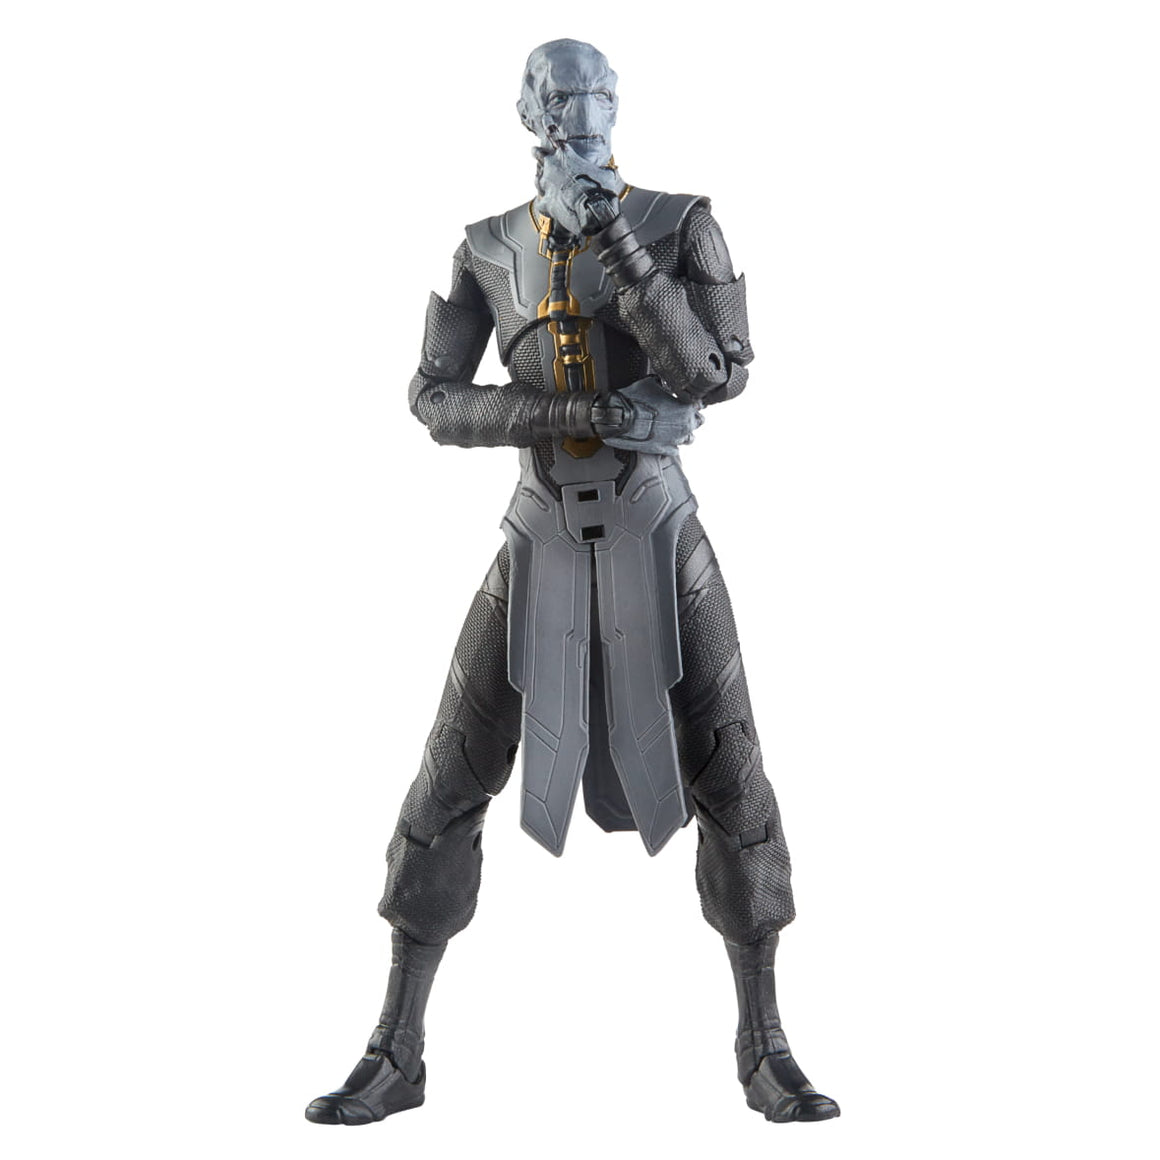 Avengers Infinity War Ebony Maw Marvel Legends Figure by Hasbro